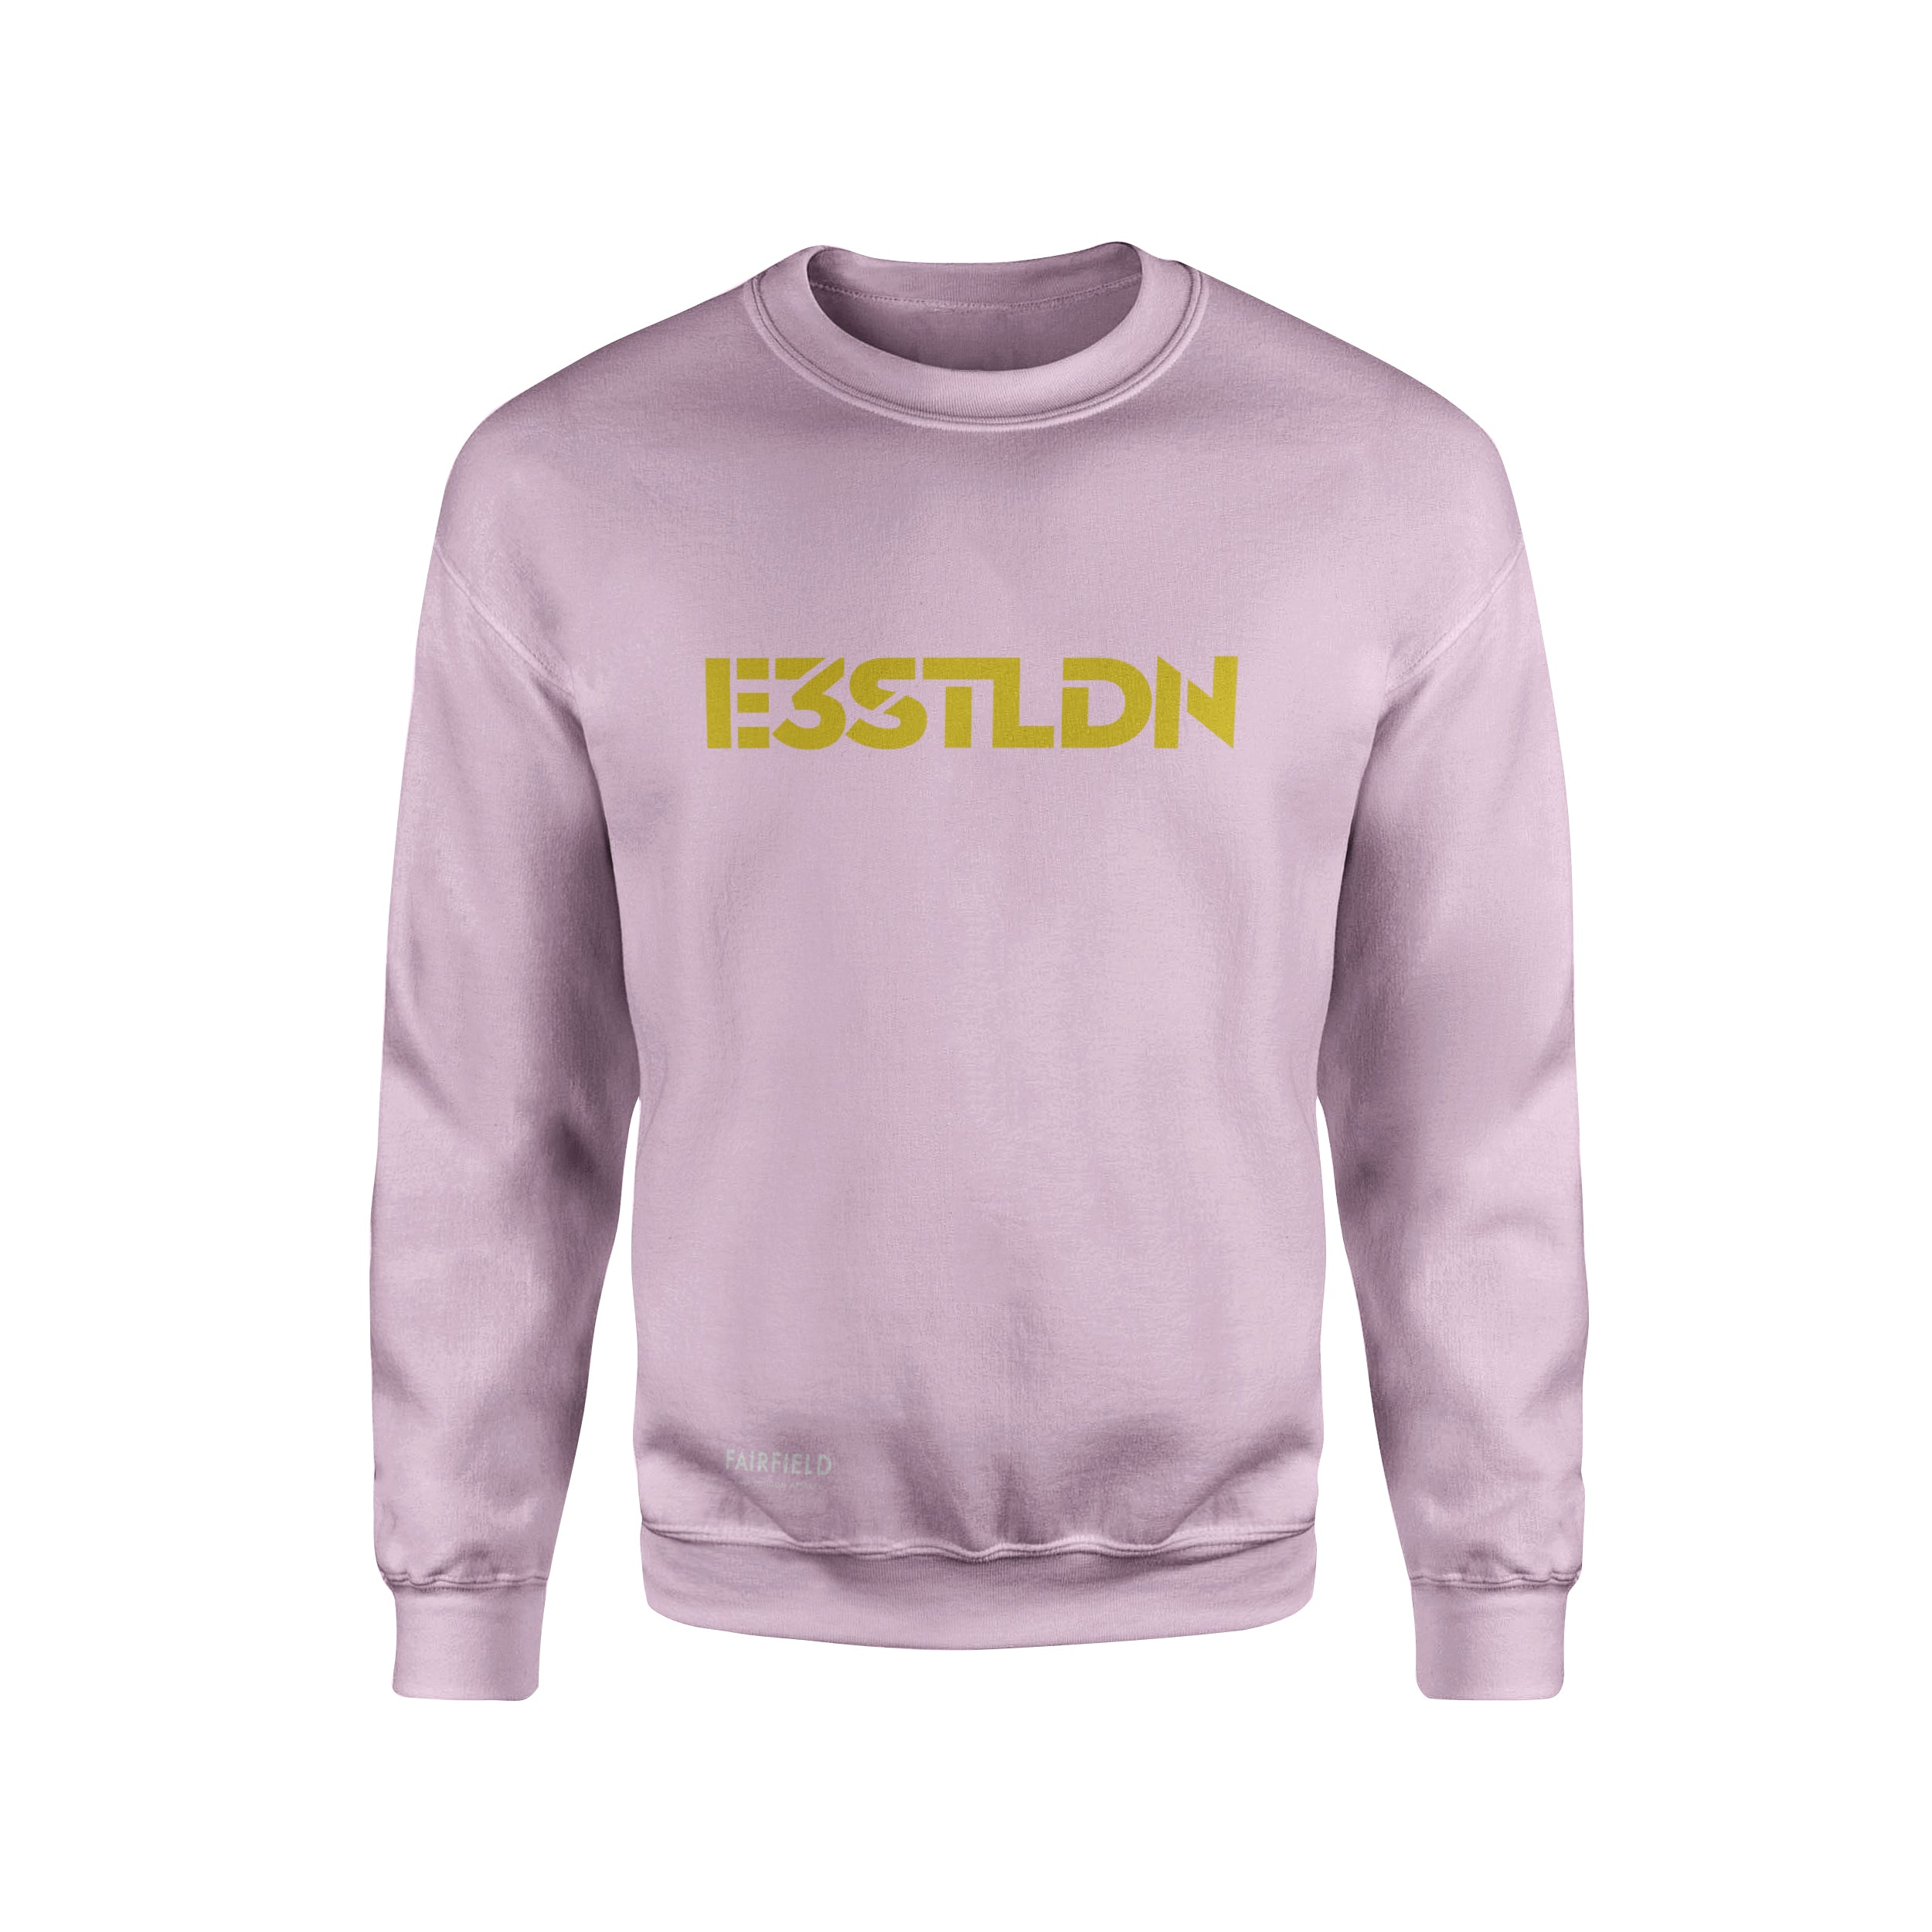 E3STLDN Pink Sweater